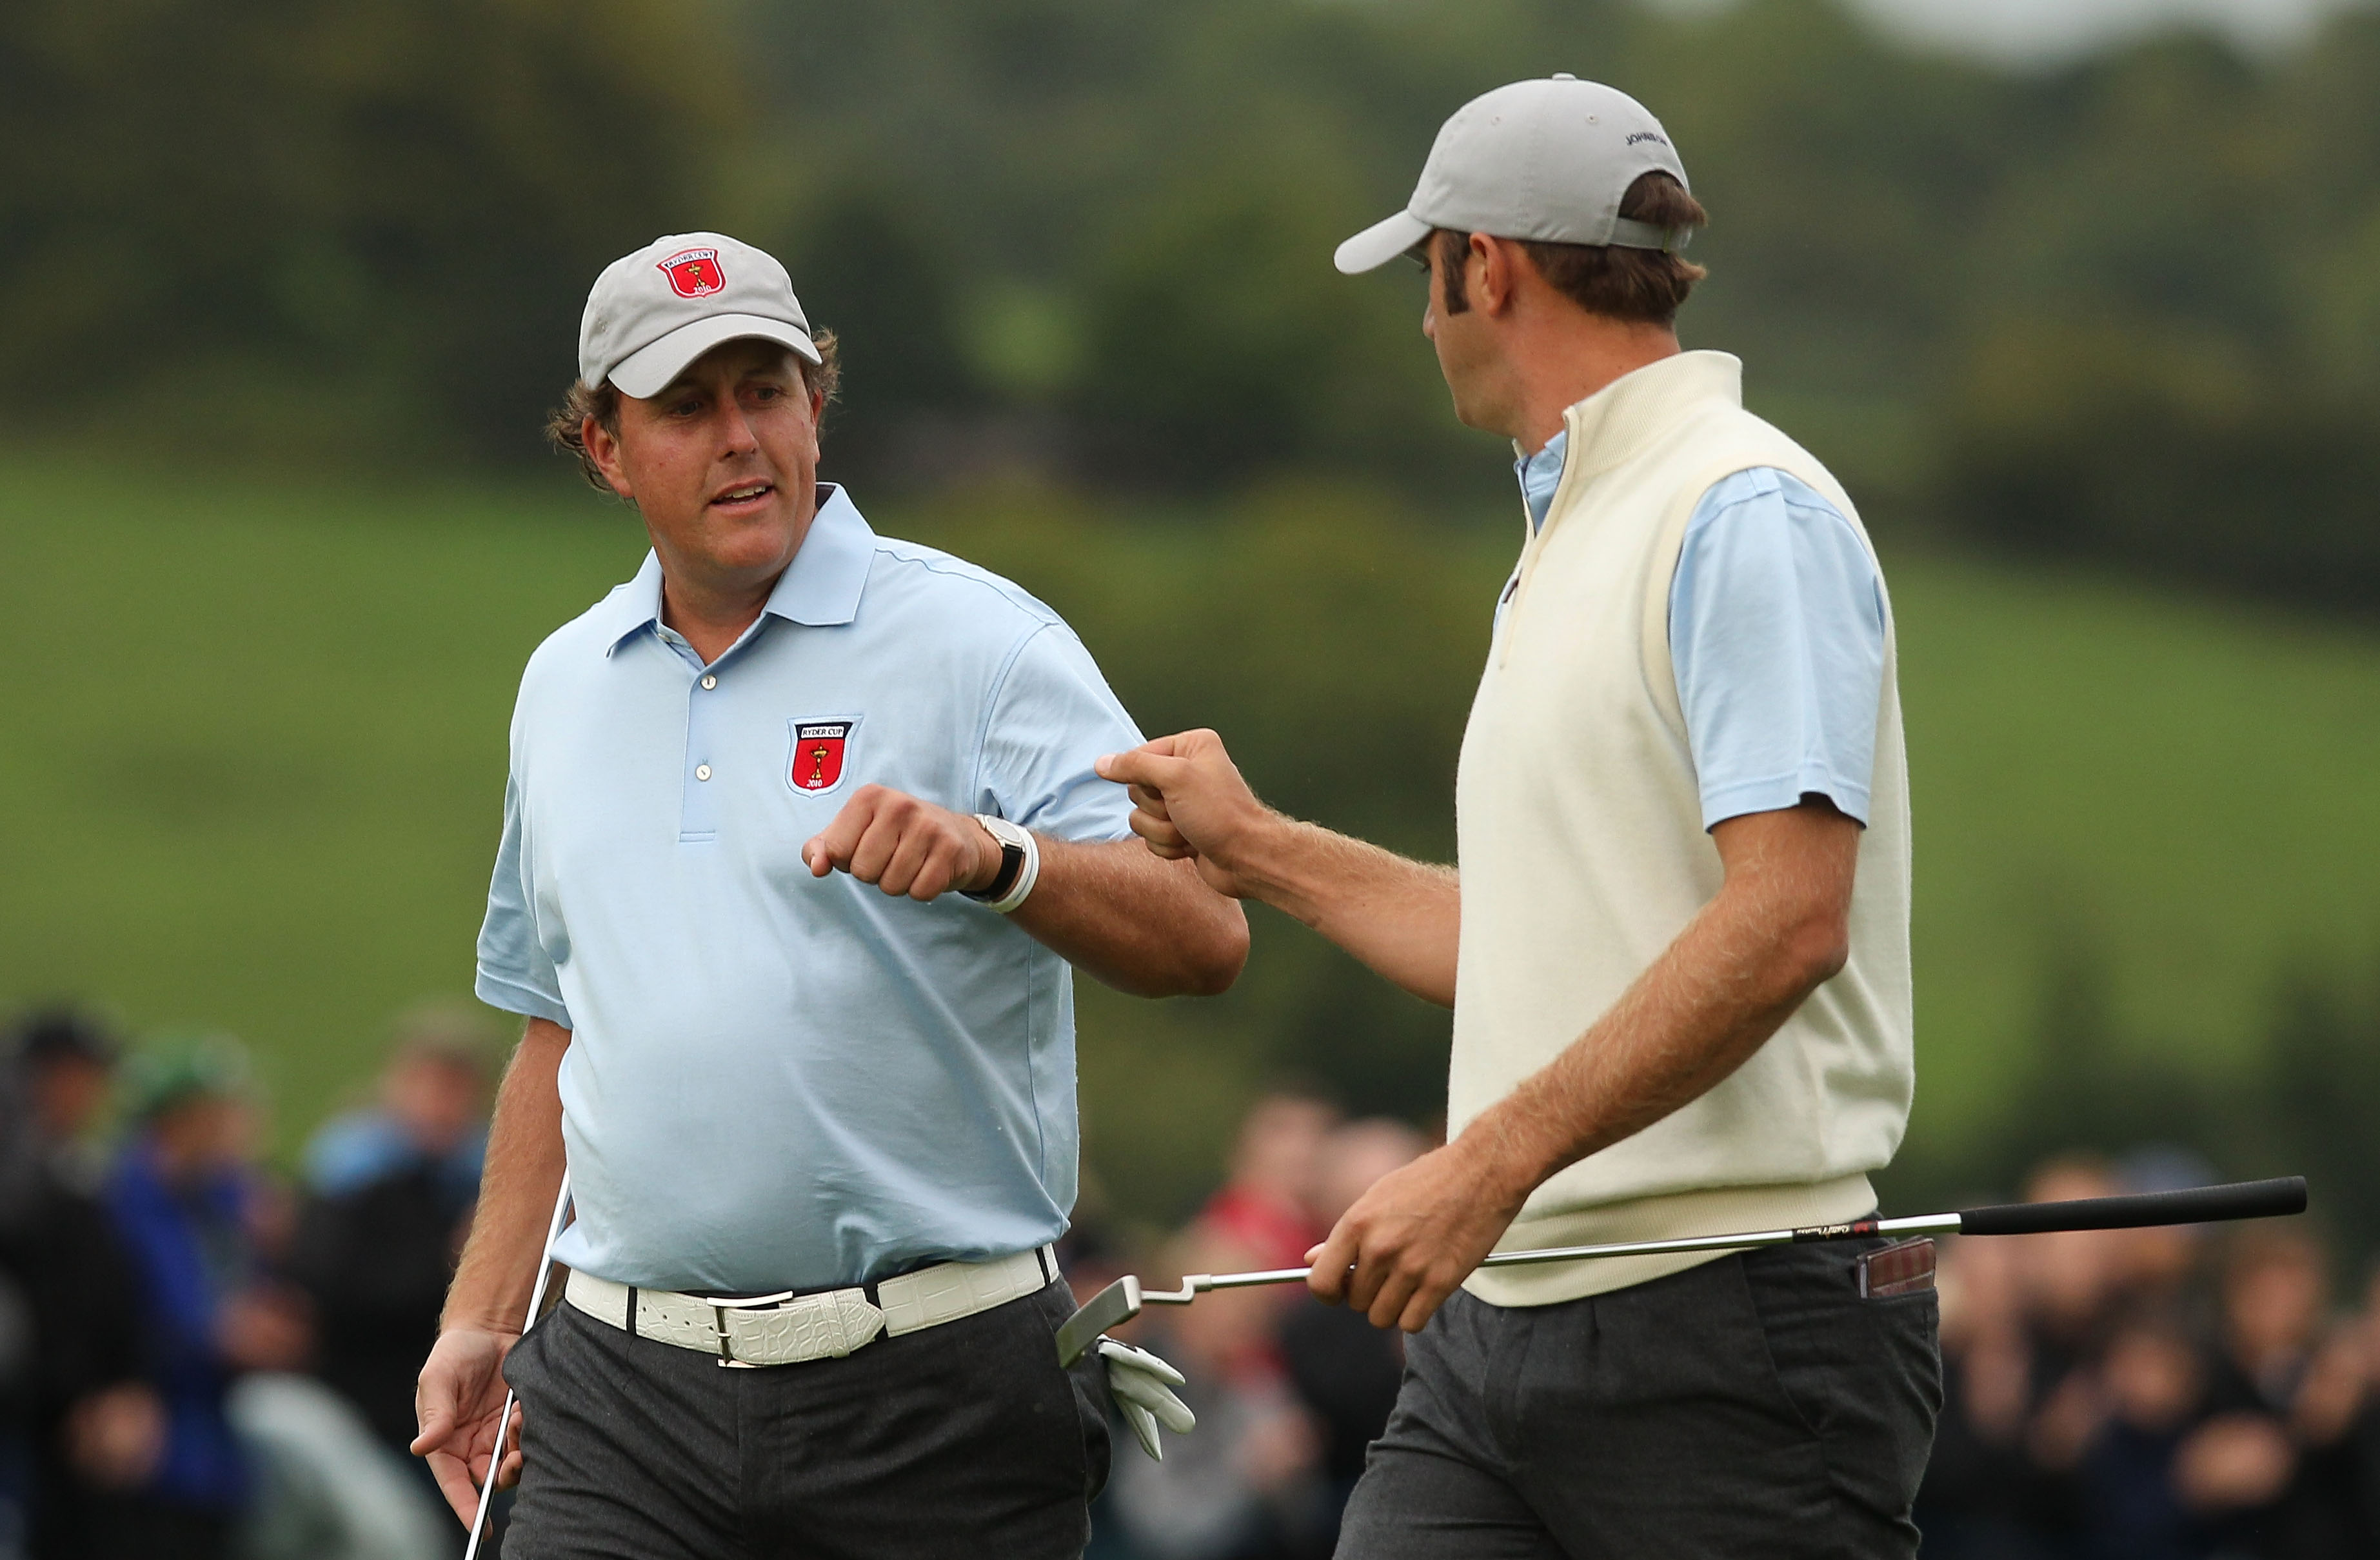 NEWPORT, WALES - OCTOBER 01:  Phil Mickelson of the USA celebrates a birdie putt on the 7th green with Dustin Johnson (R) during the Morning Fourball Matches during the 2010 Ryder Cup at the Celtic Manor Resort on October 1, 2010 in Newport, Wales.  (Photo by Ross Kinnaird/Getty Images)